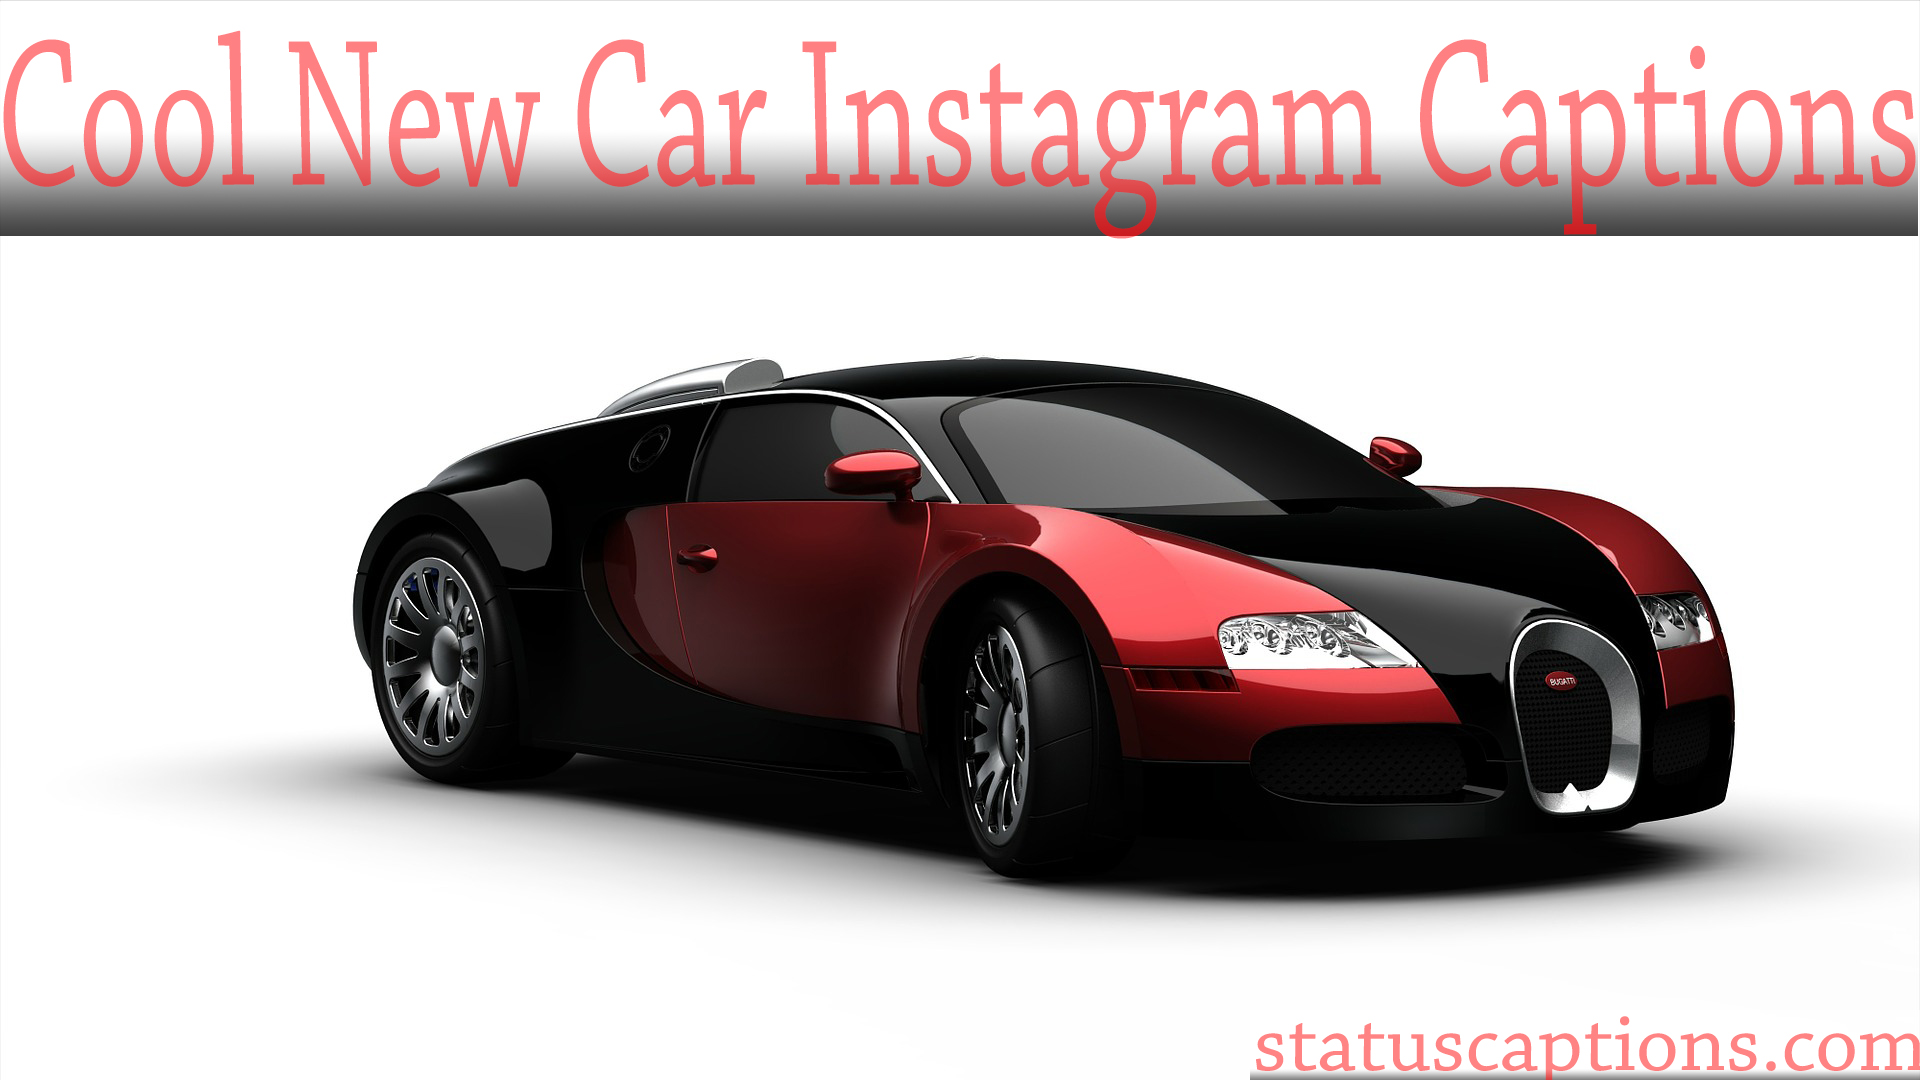 New Car Instagram captions